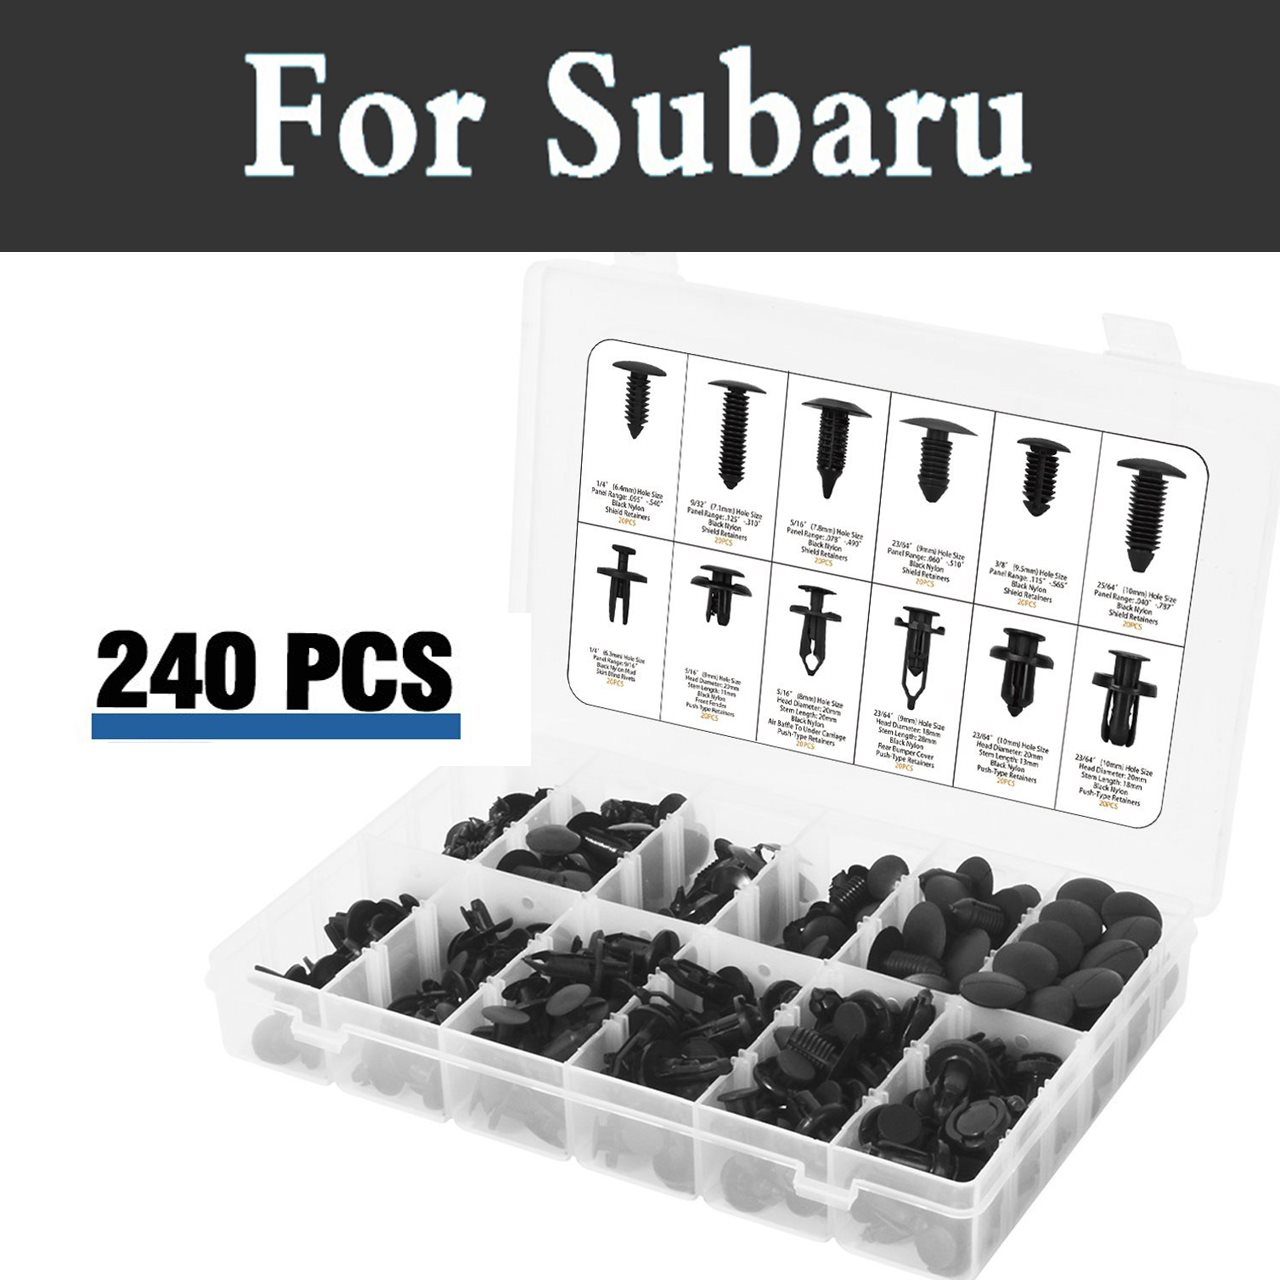 240pcs Plastic Car Retainers Trim Mud Guard Trim Push Car Rivets For Subaru Alcyone Brz Dex Forester Impreza Wrx Sti Justy for subaru xv 09 13 forester 10 wrx sti balancing rod ball joint